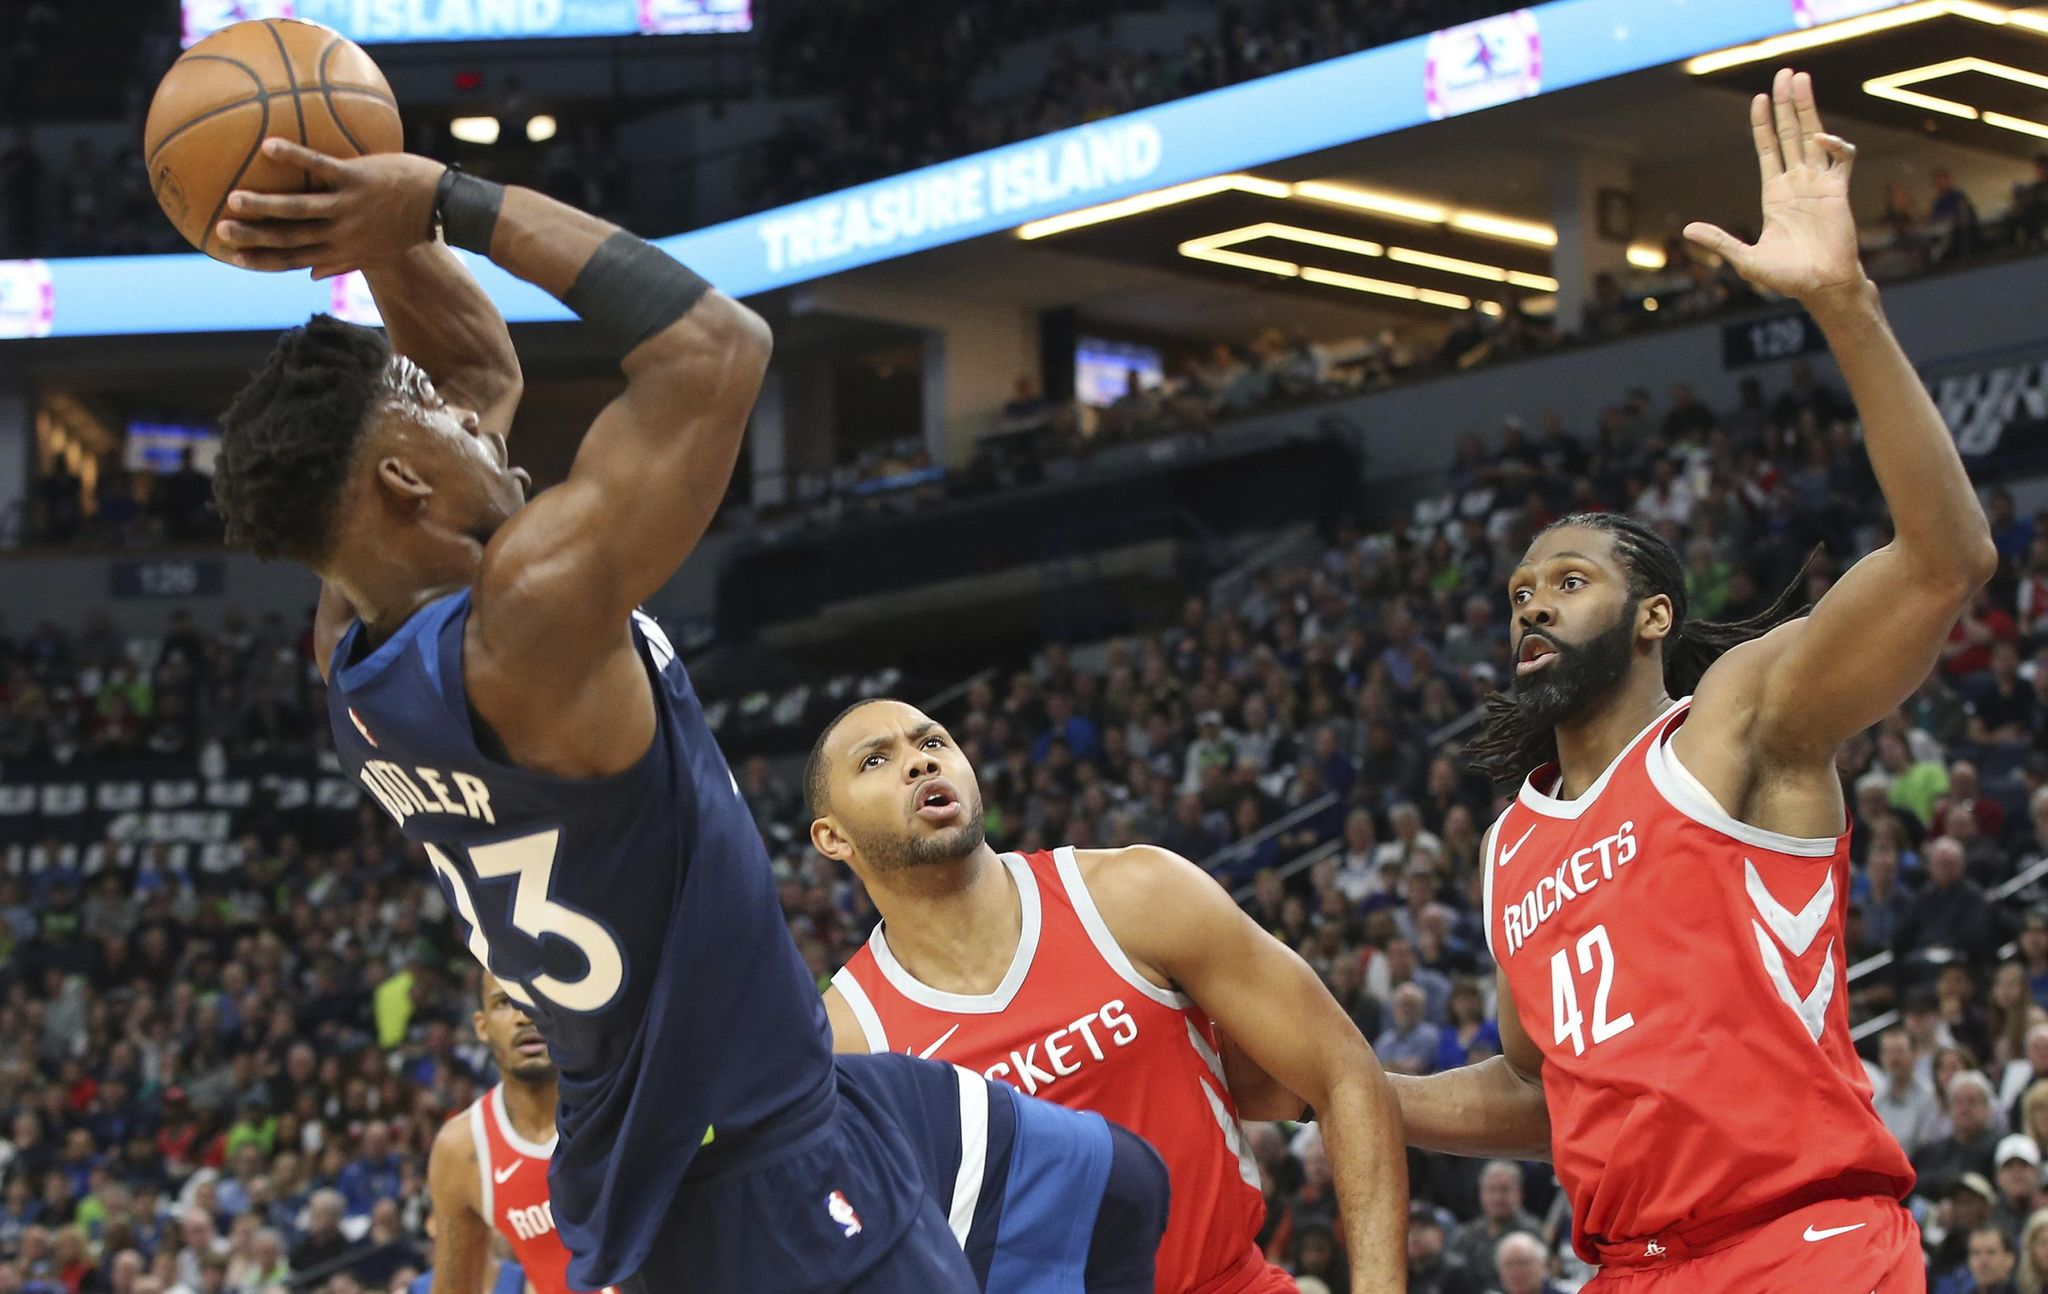 Rockets_timberwolves_basketball_80219_s2048x1294